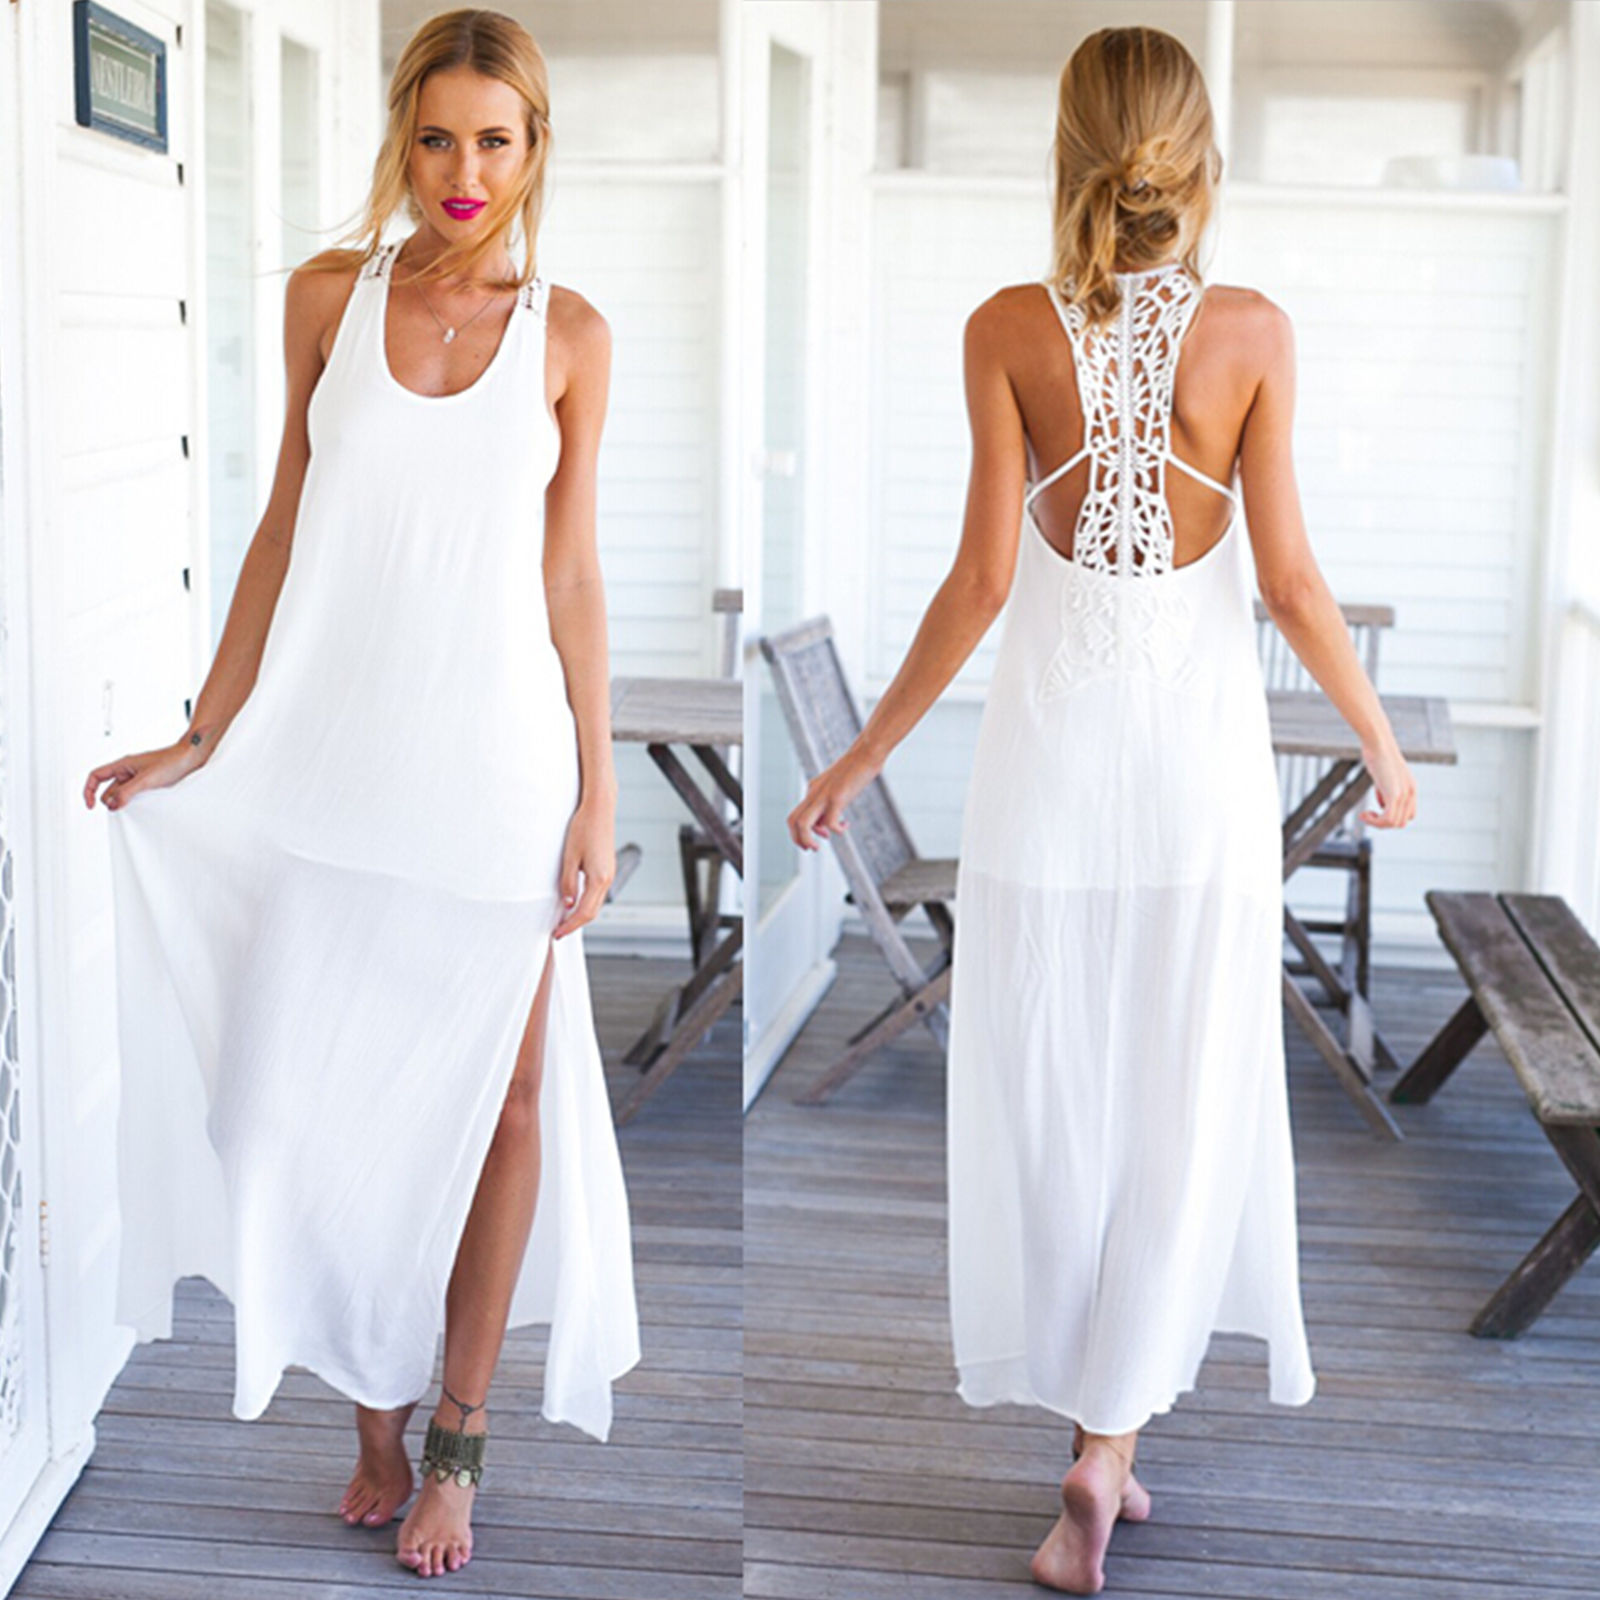 489582e0032 Women Summer Crochet Boho Evening Party Long Maxi Beach Dress Chiffon  Sundress